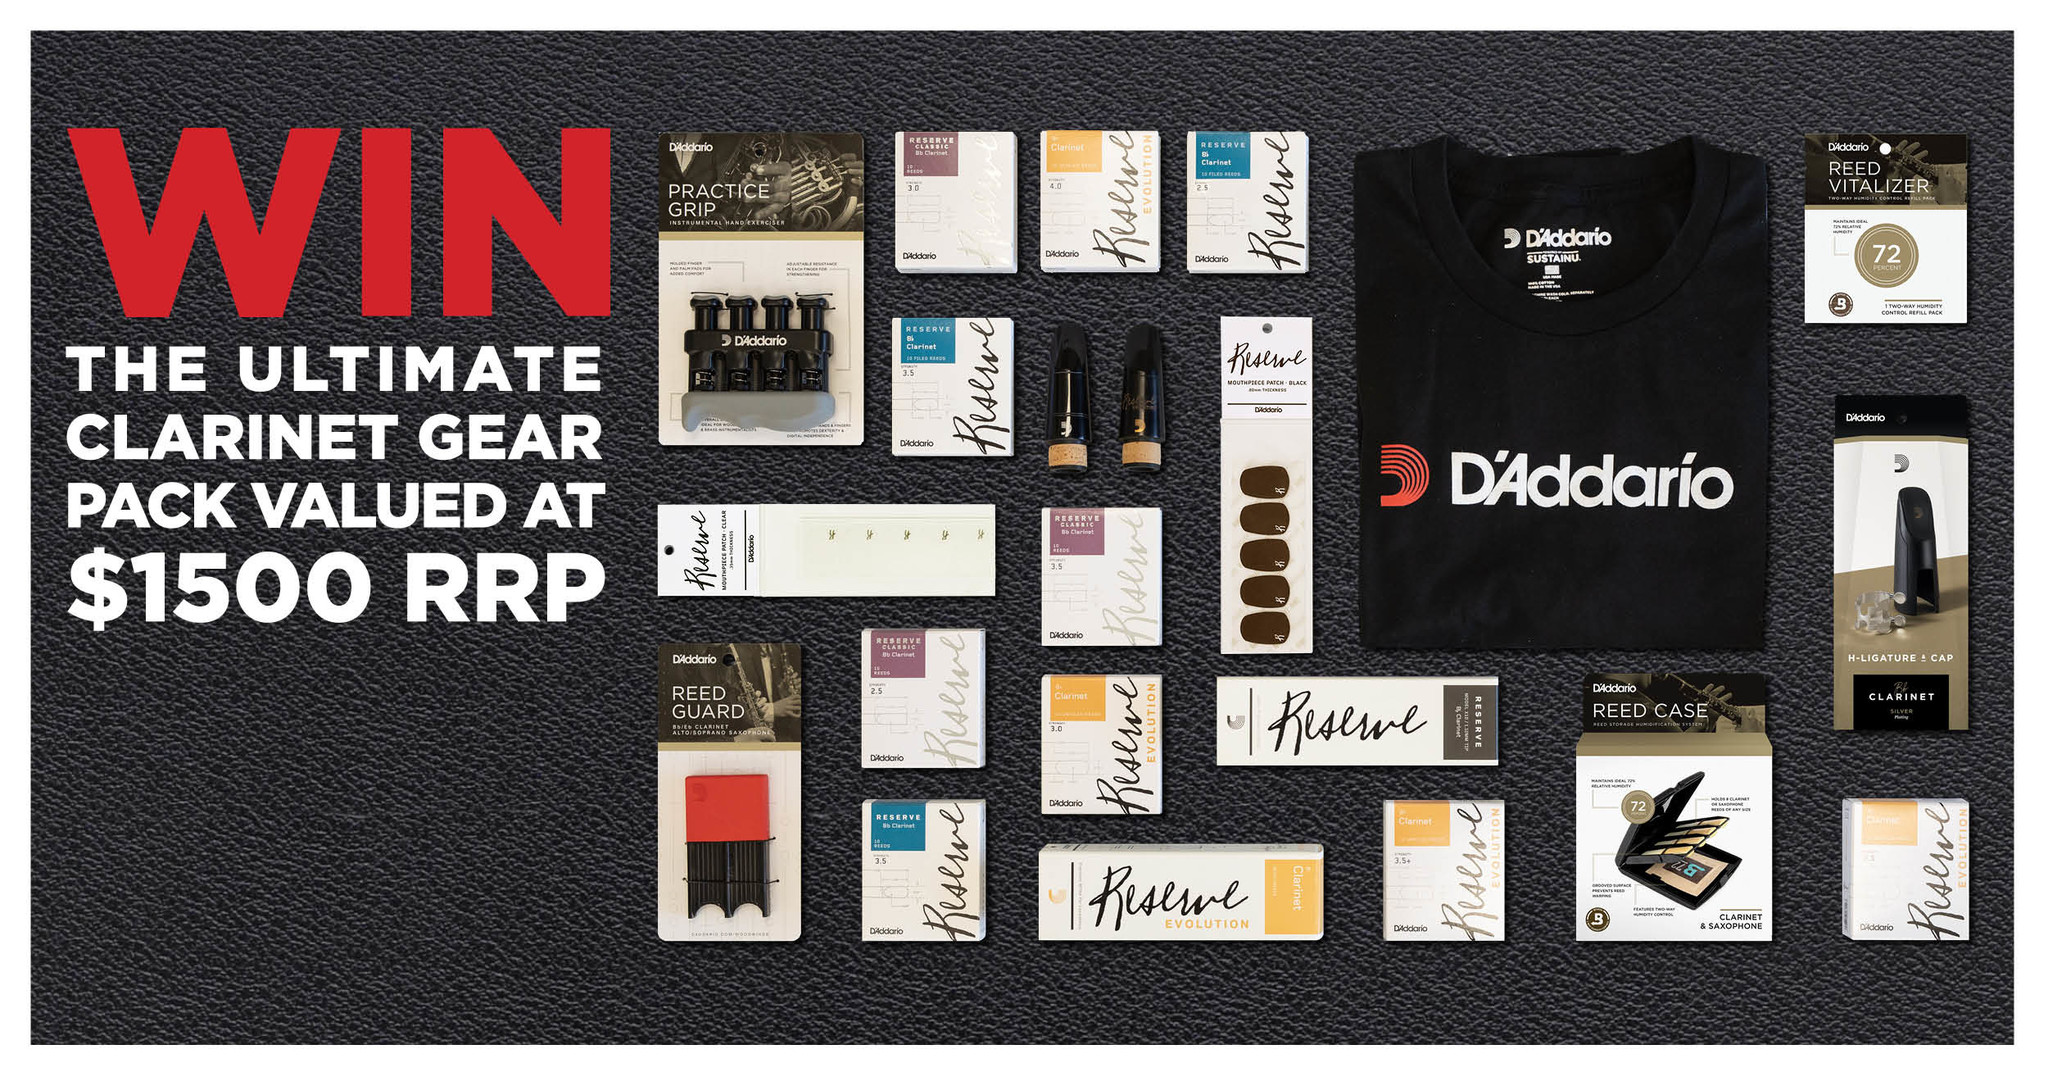 D'addario clarinet prize pack banner